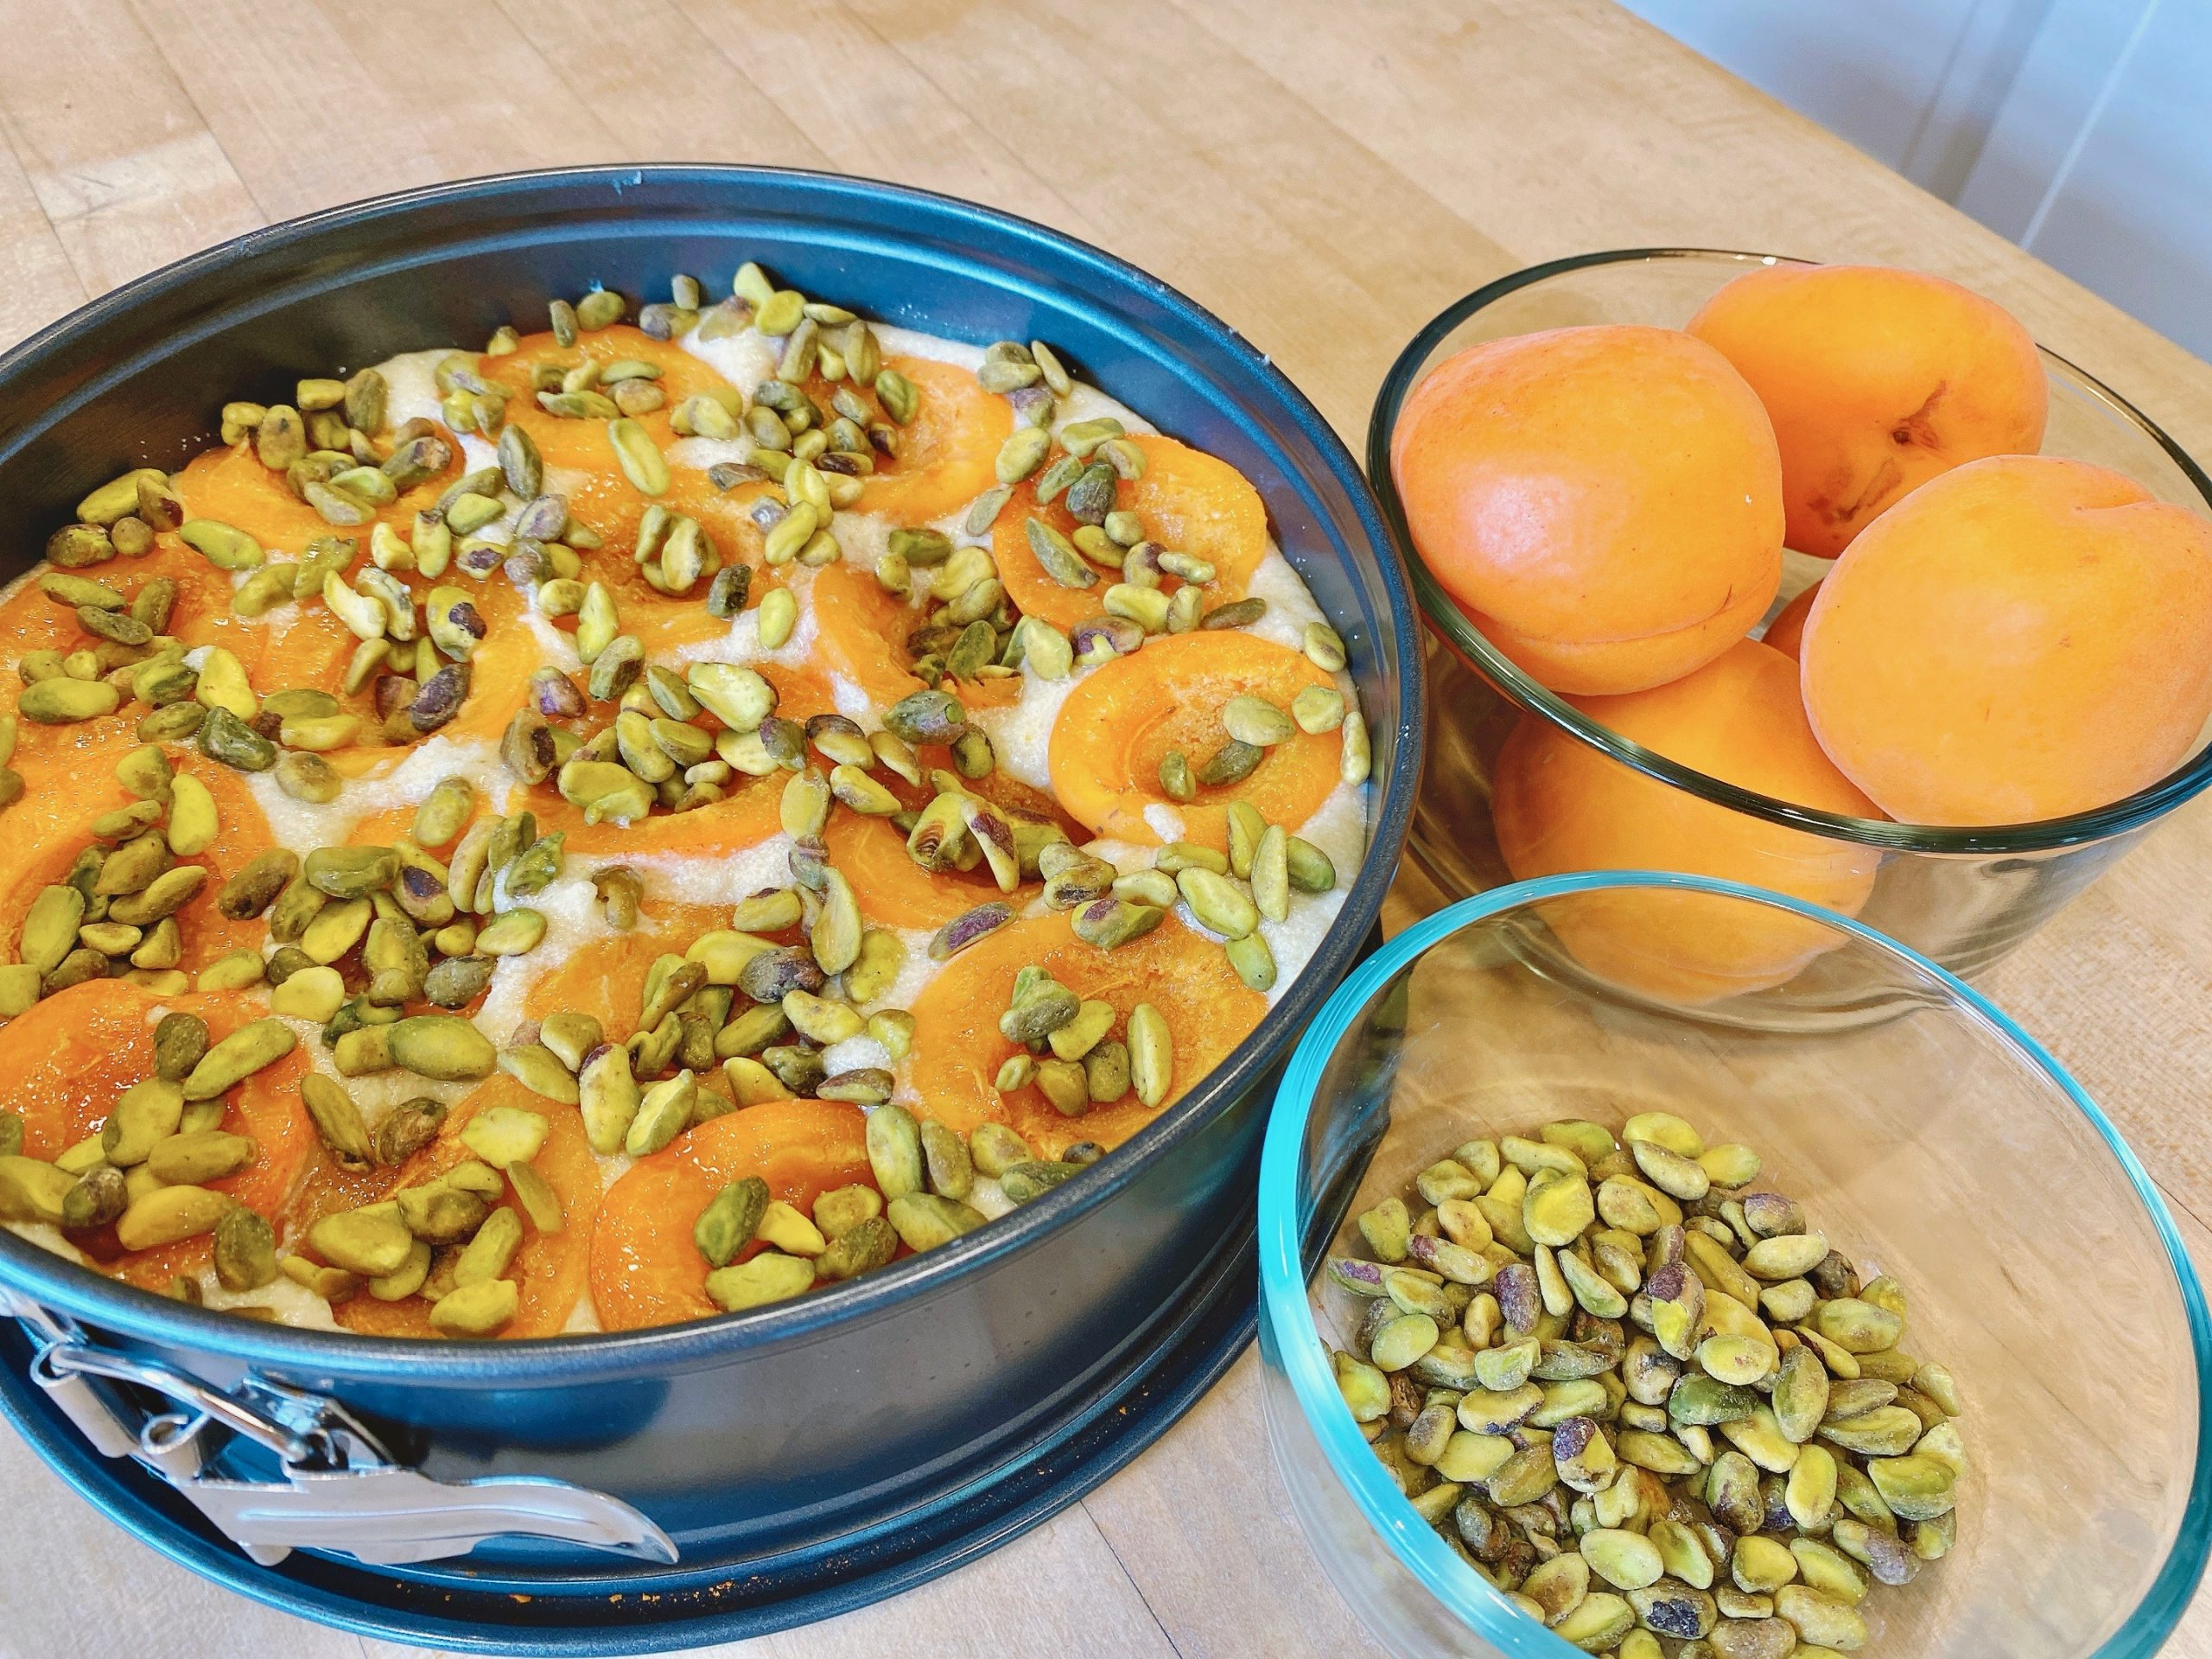 Uncooked Apricot Pistachio Cake with a side bowl of whole fresh apricots and roasted pistachio nuts